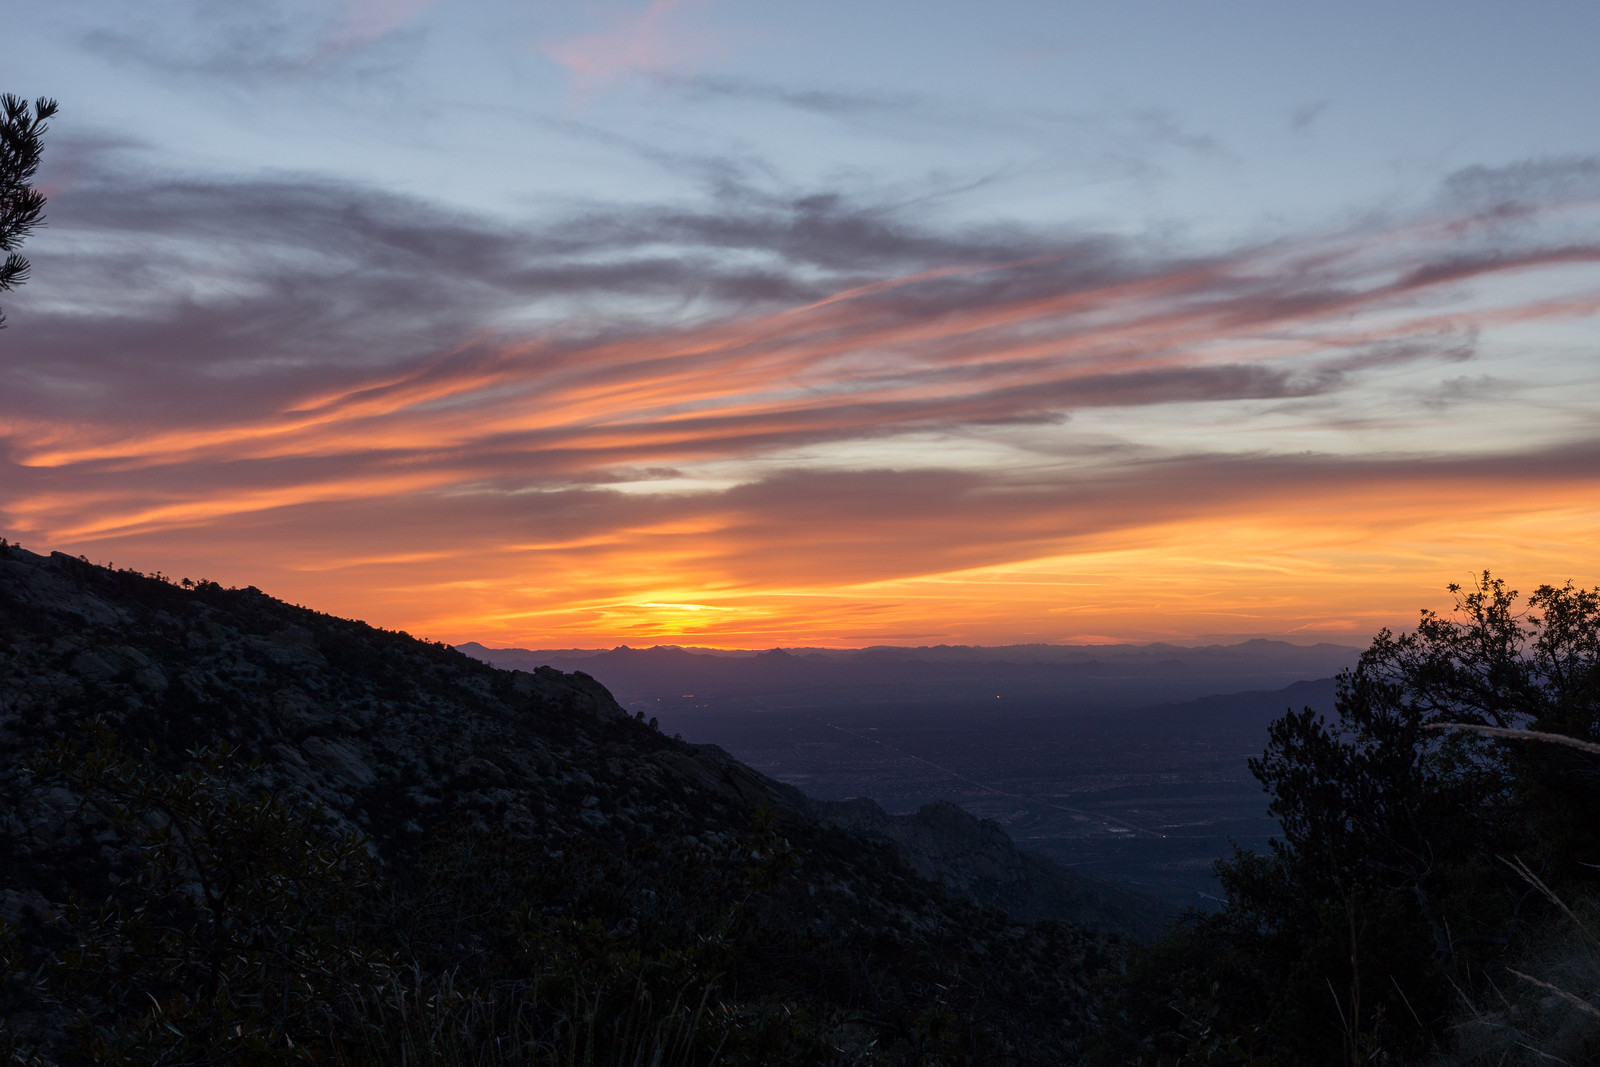 1503 Sunset from the Mount Lemmon Trail near Romero Pass